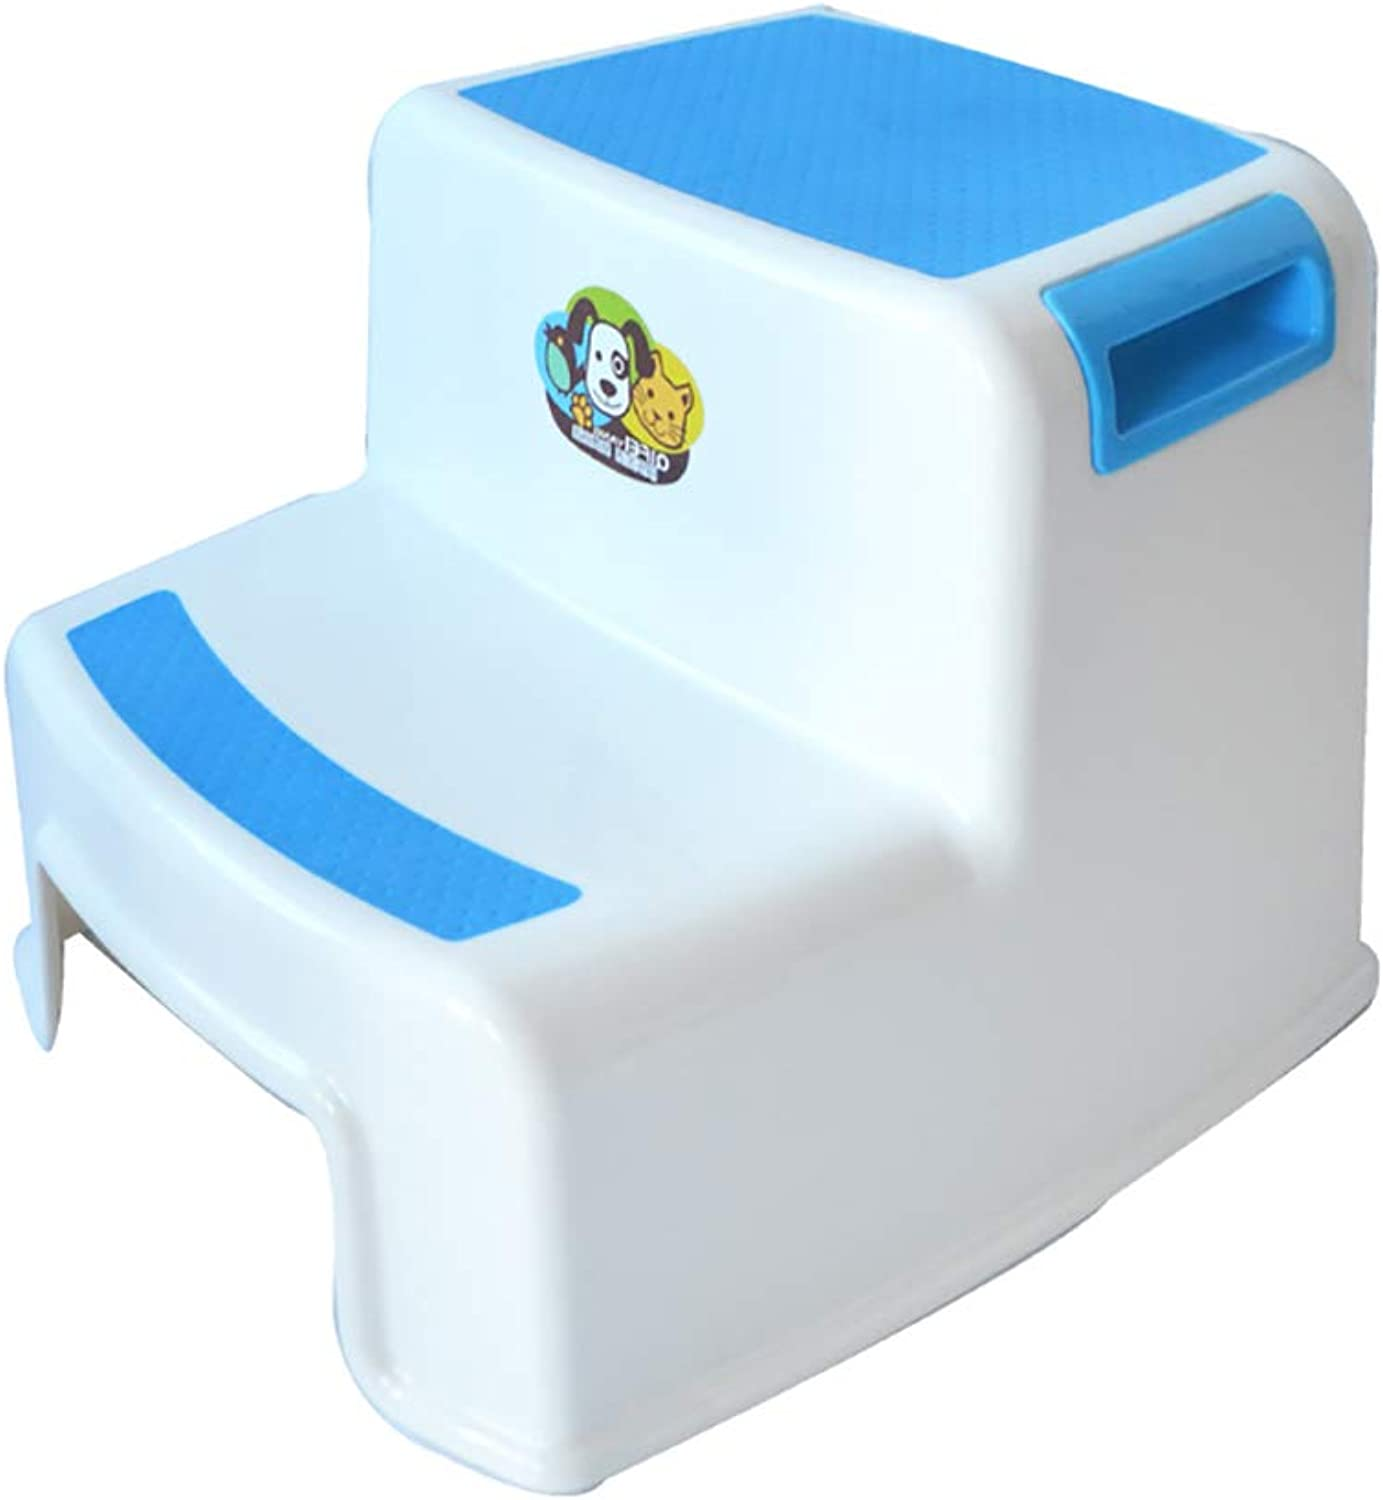 Double Step Stool for Kids, Slip Resistant Soft Grip